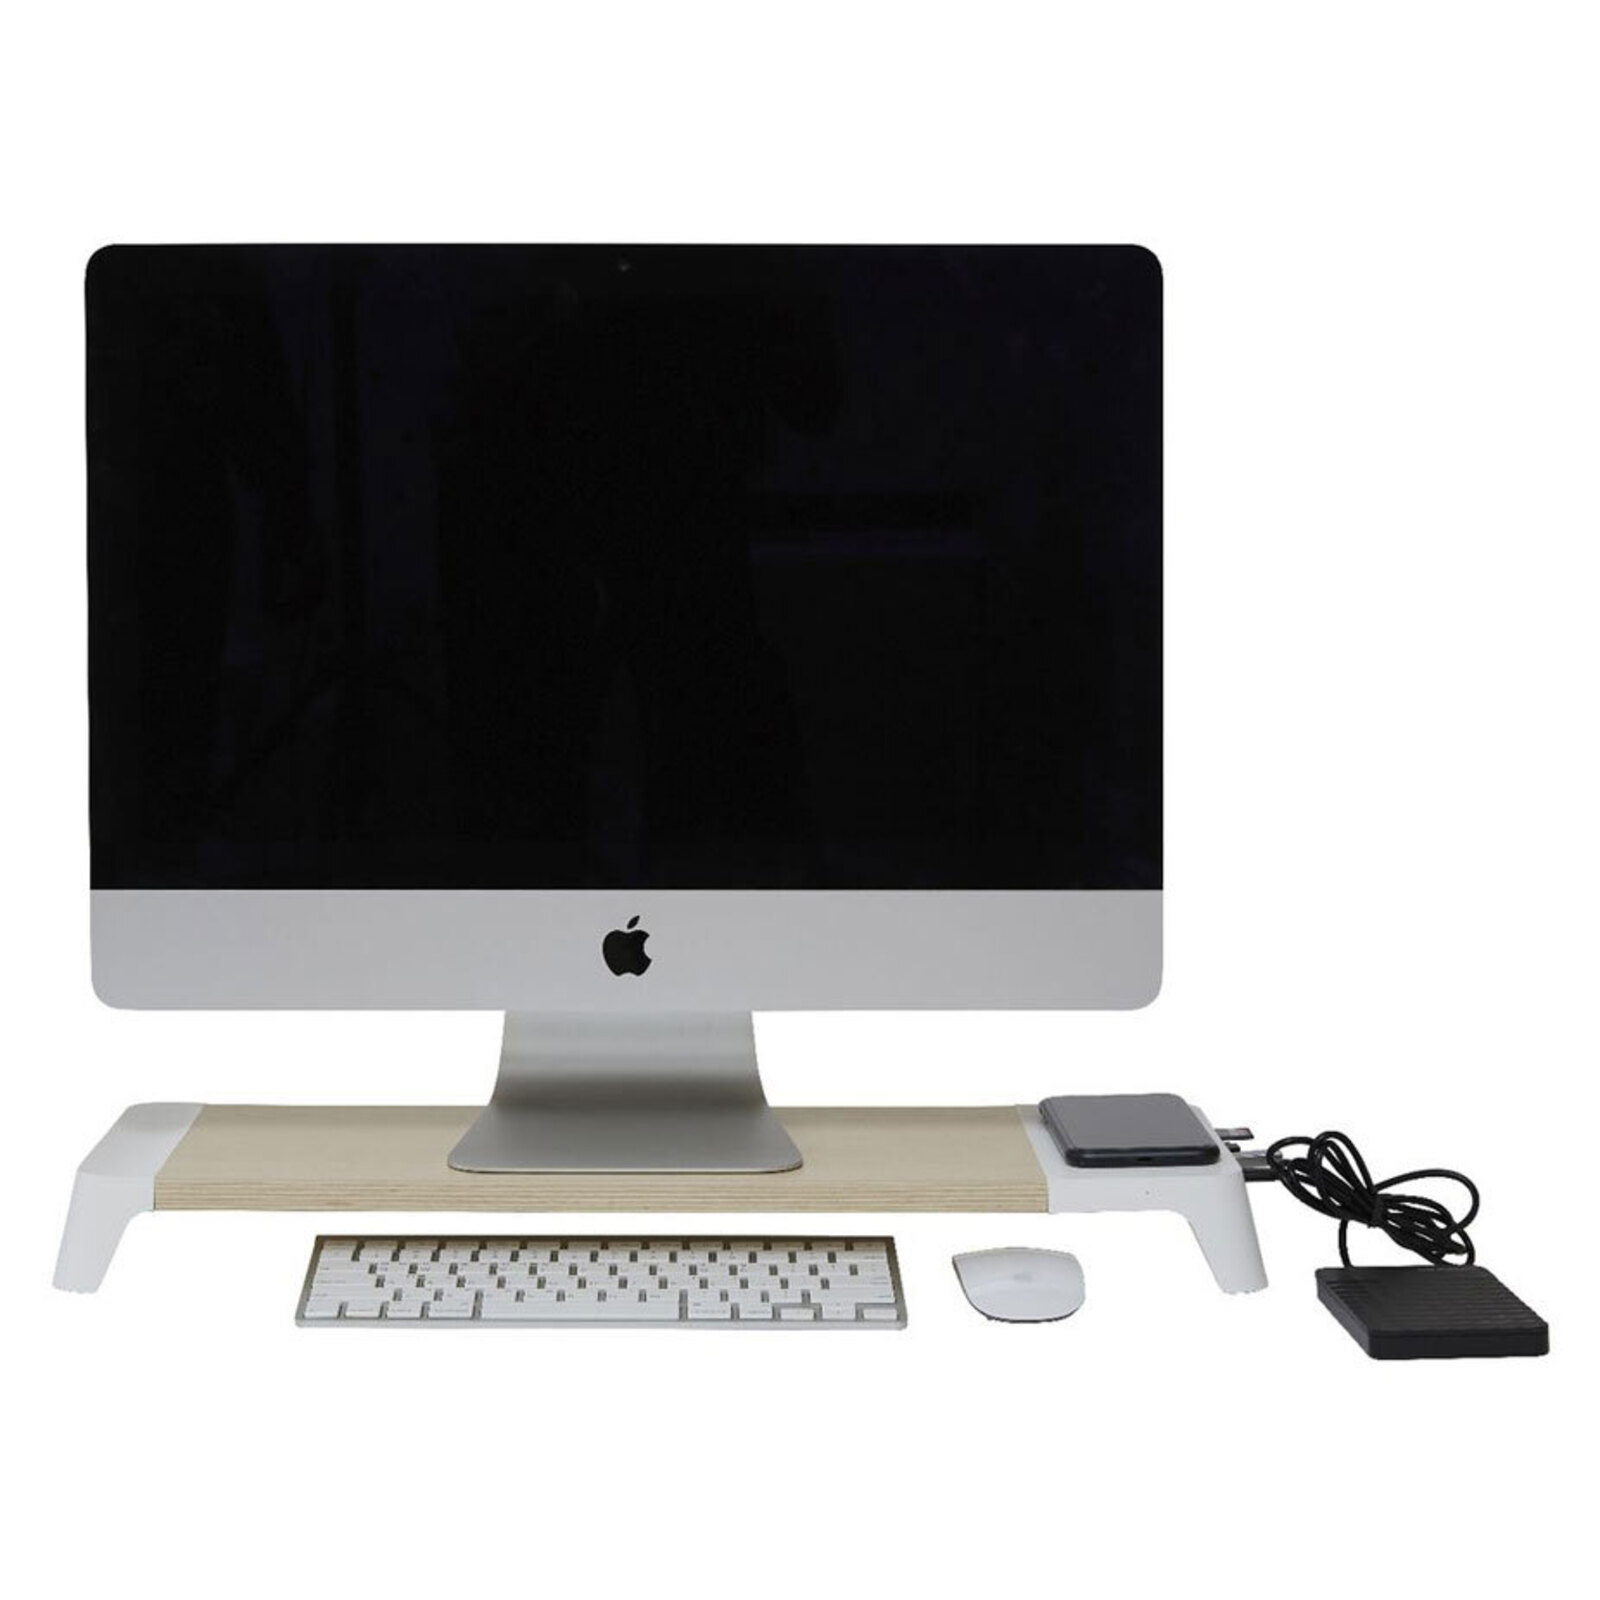 Pout Eyes 8 Monitor Stand/Riser 15W Wireless Charging/USB-A C Hub Station White